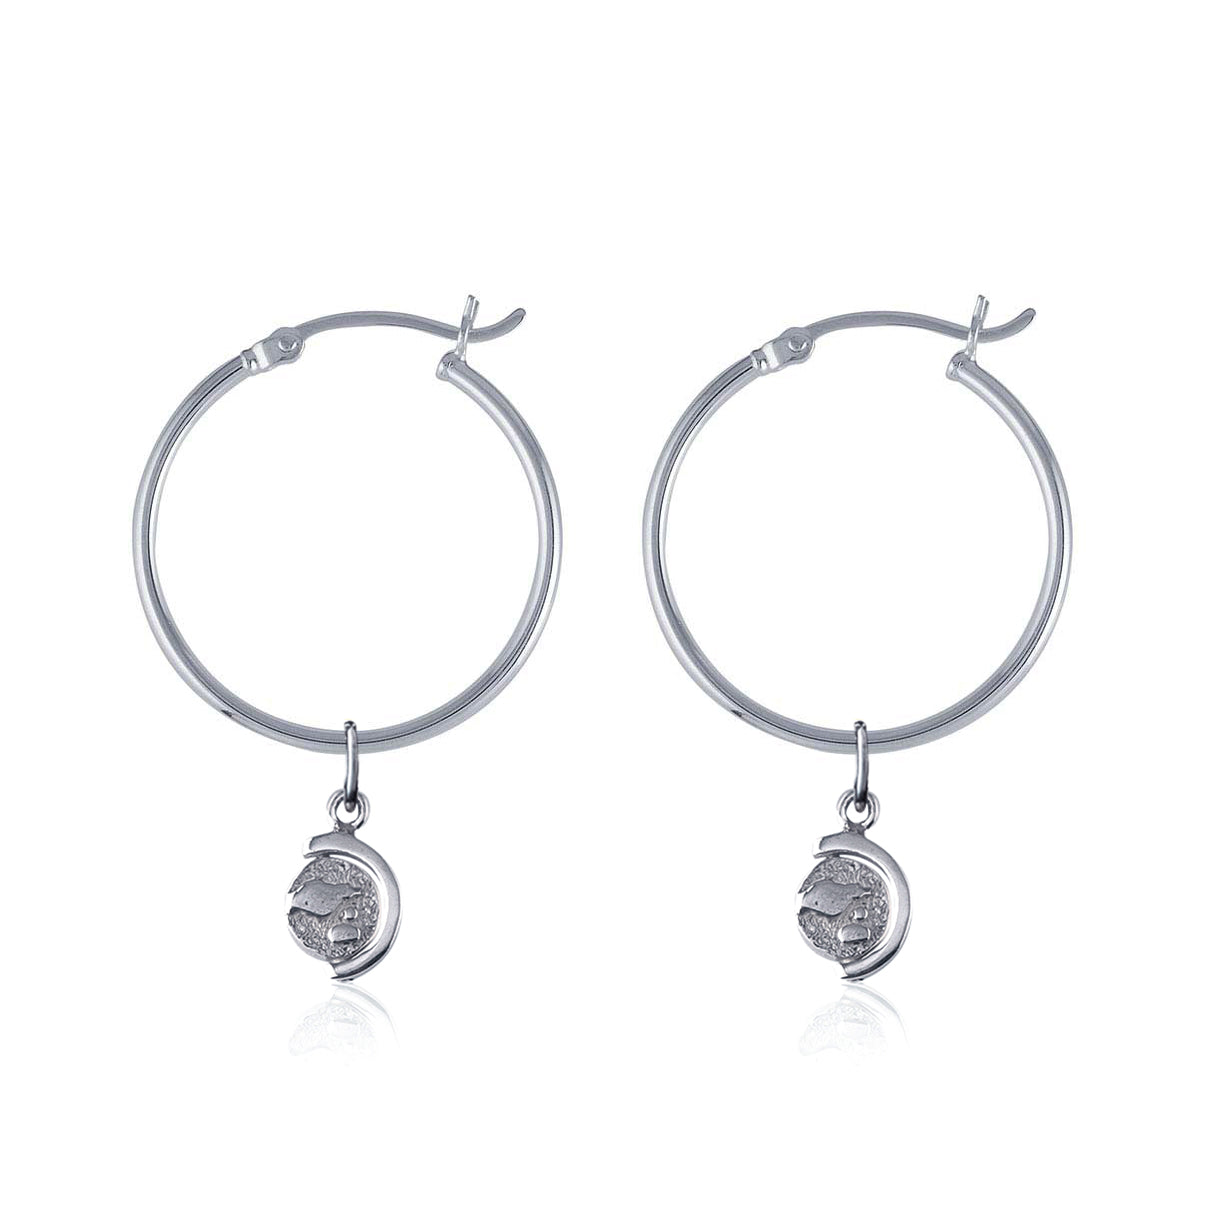 La Luna Rose Recycled Sterling Silver Tube Hoops with Spinning Globe Charms